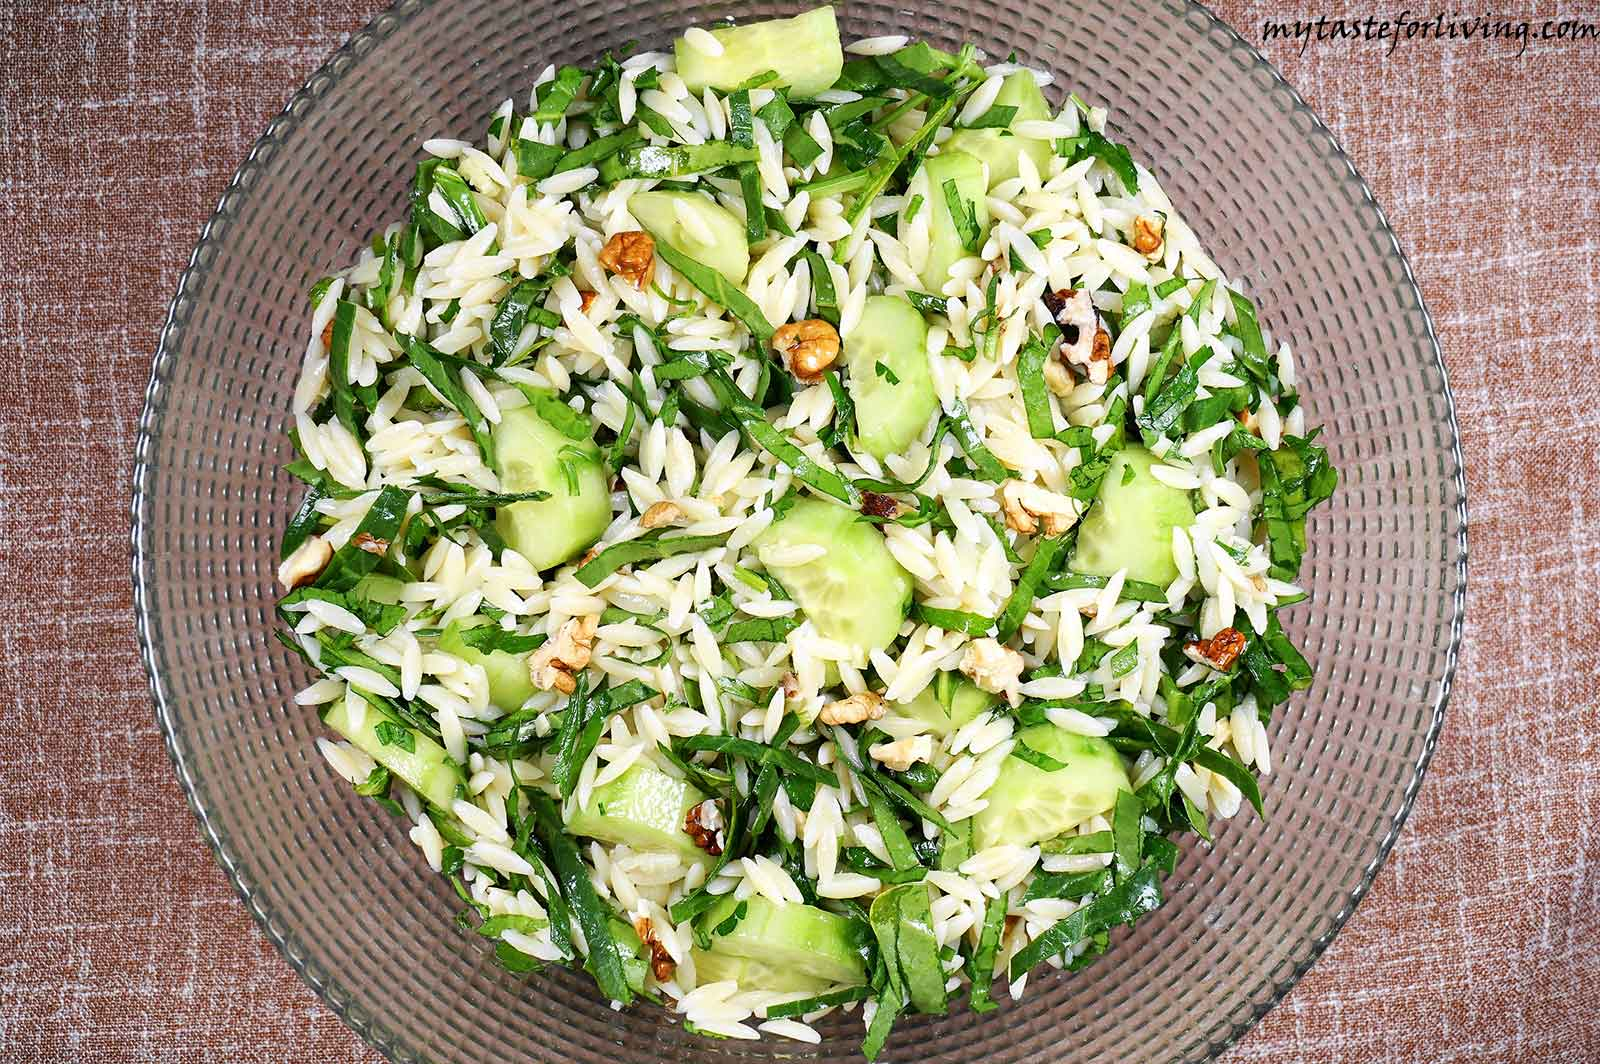 Fresh salad prepared with orzo (also called kritharaki , arpa fide or risoni), cucumbers, spinach, parsley and walnuts, seasoned with crushed garlic, freshly squeezed lemon juice and extra virgin olive oil.